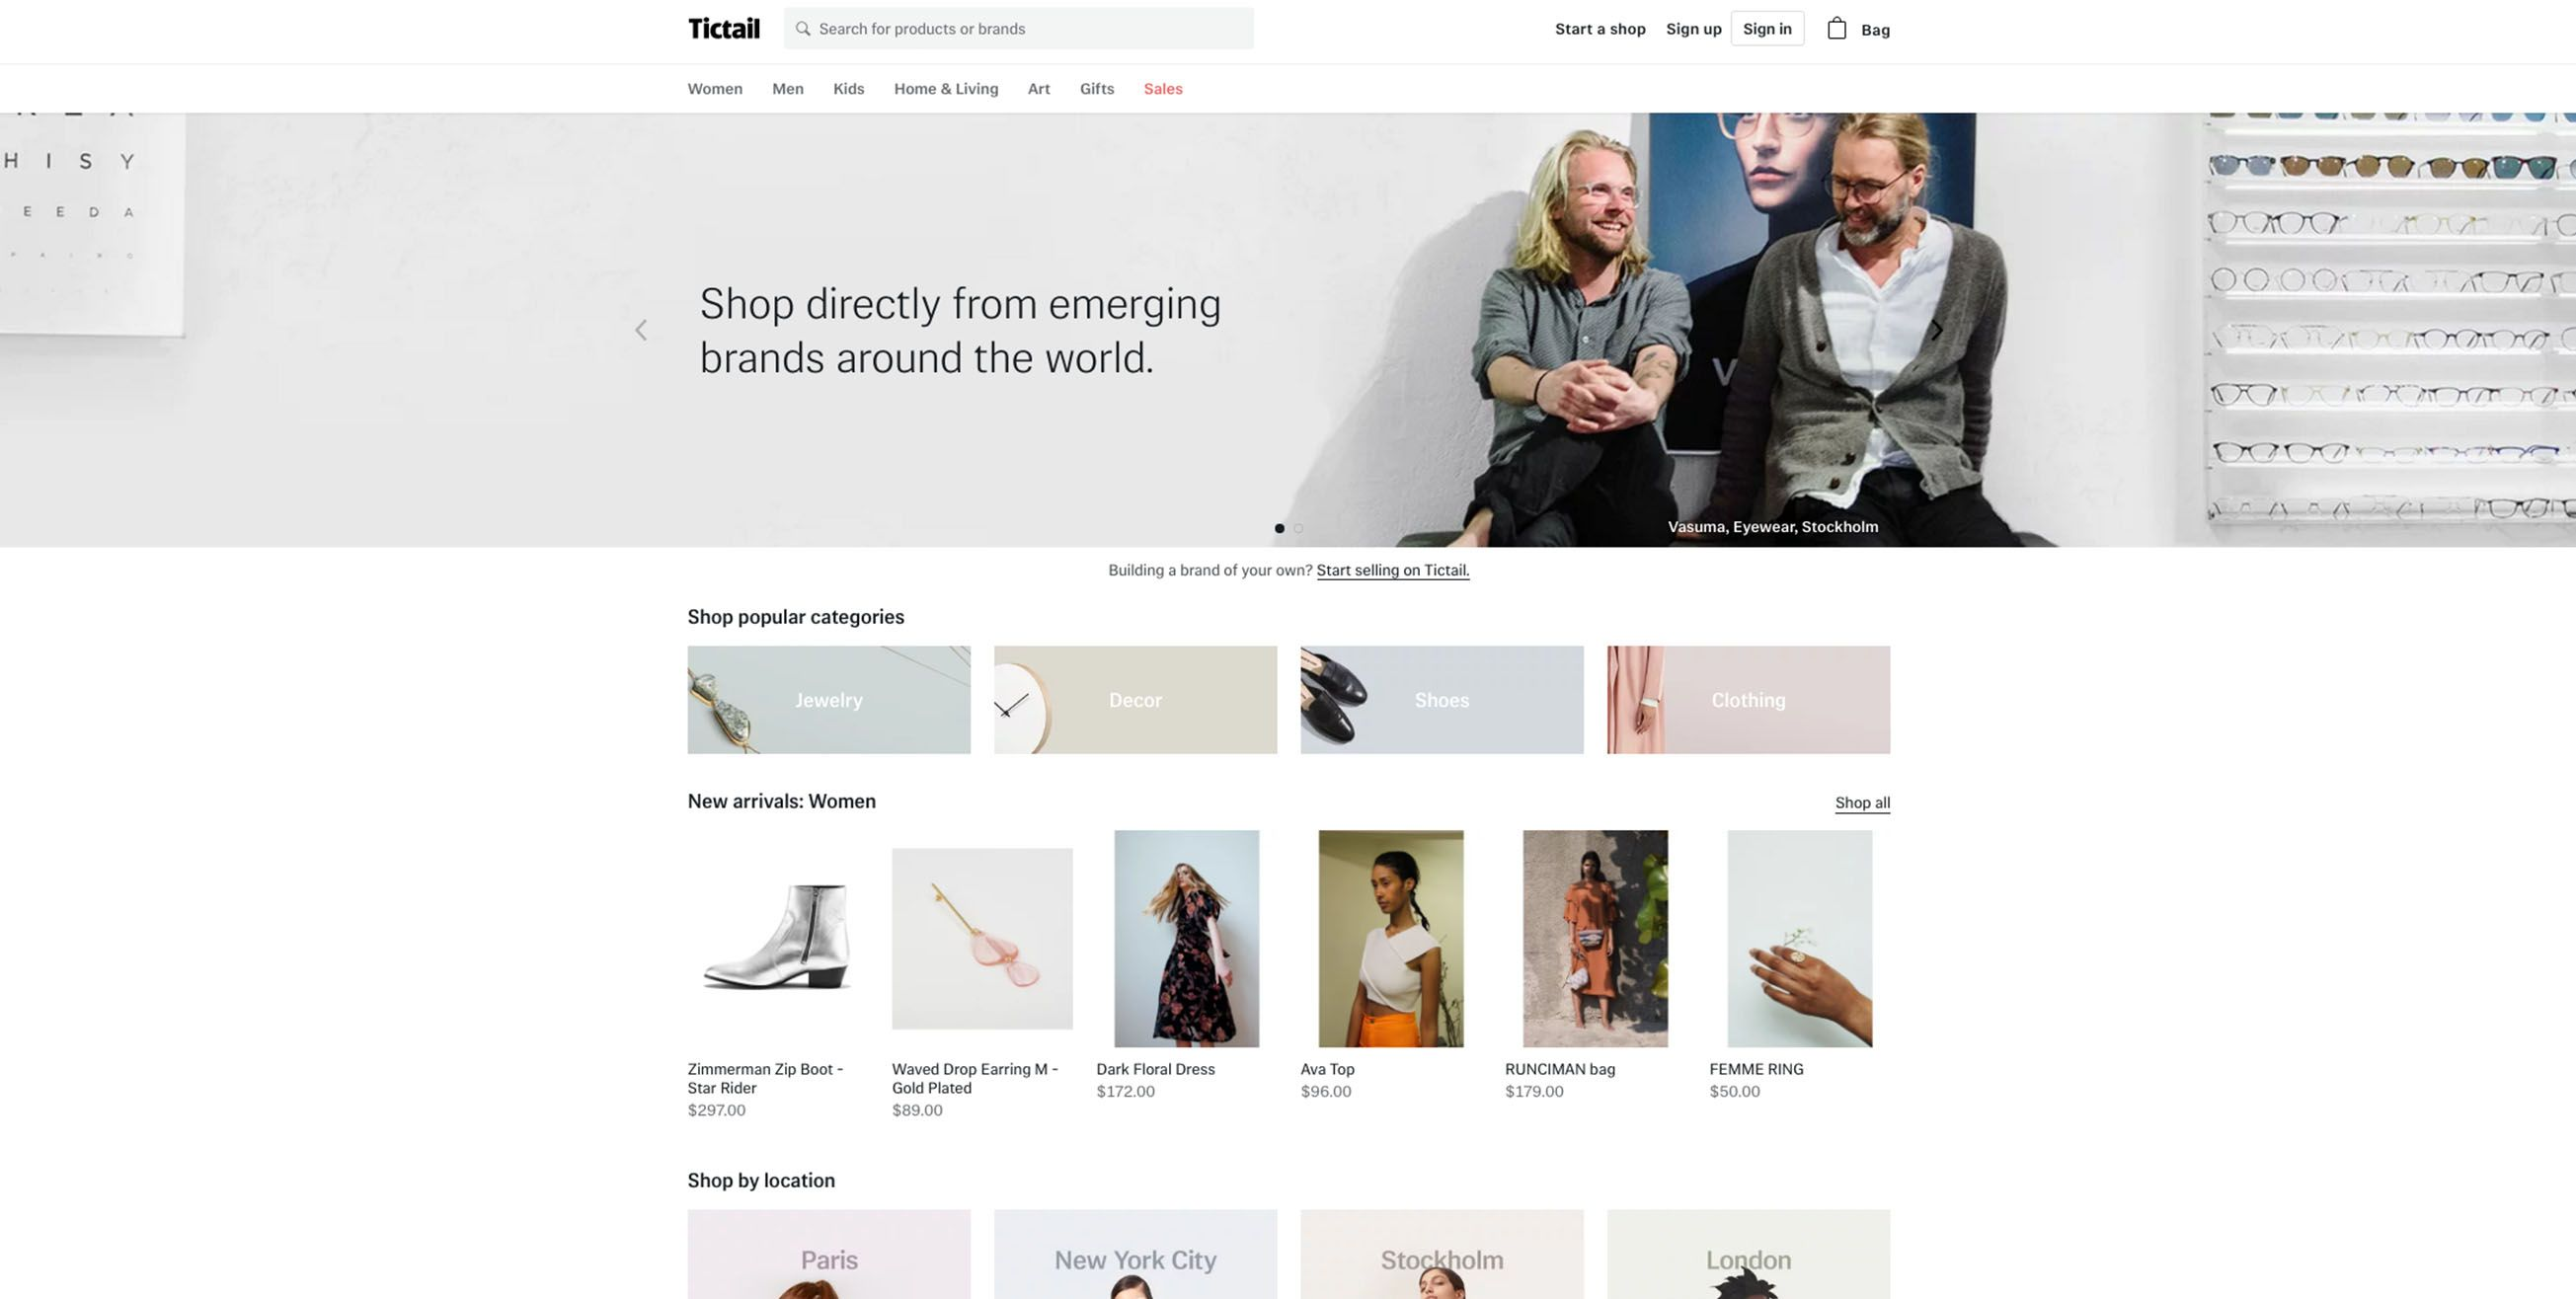 Design Shop Online The Best Shopping Sites Of 2018 15 New Shopping Sites To Waste